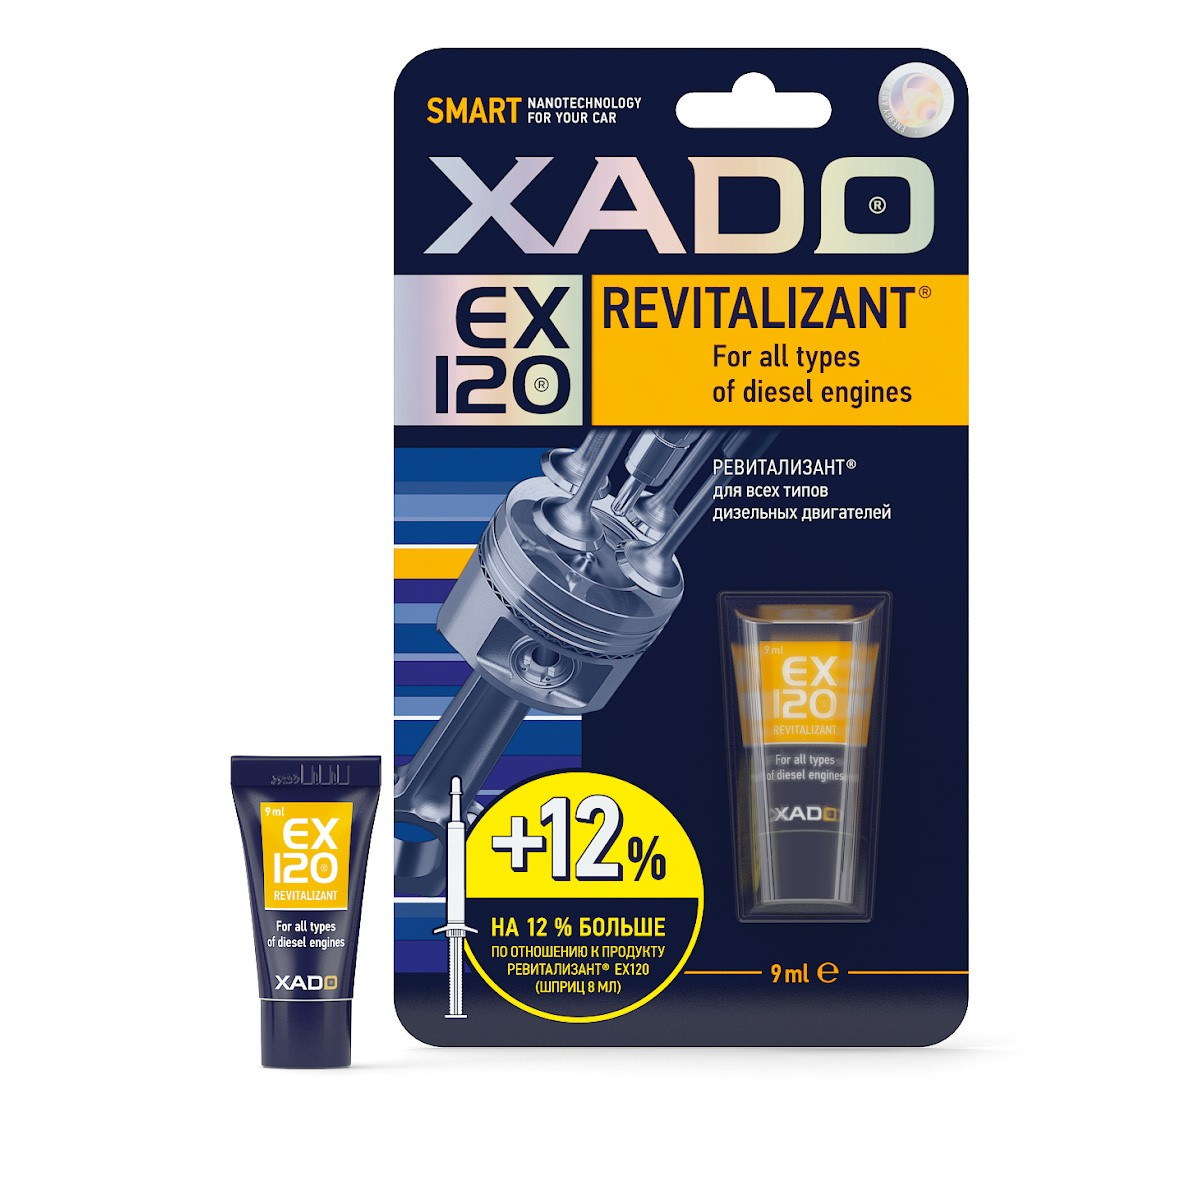 Revitalizant EX120 for all types of diesel engines - XADO